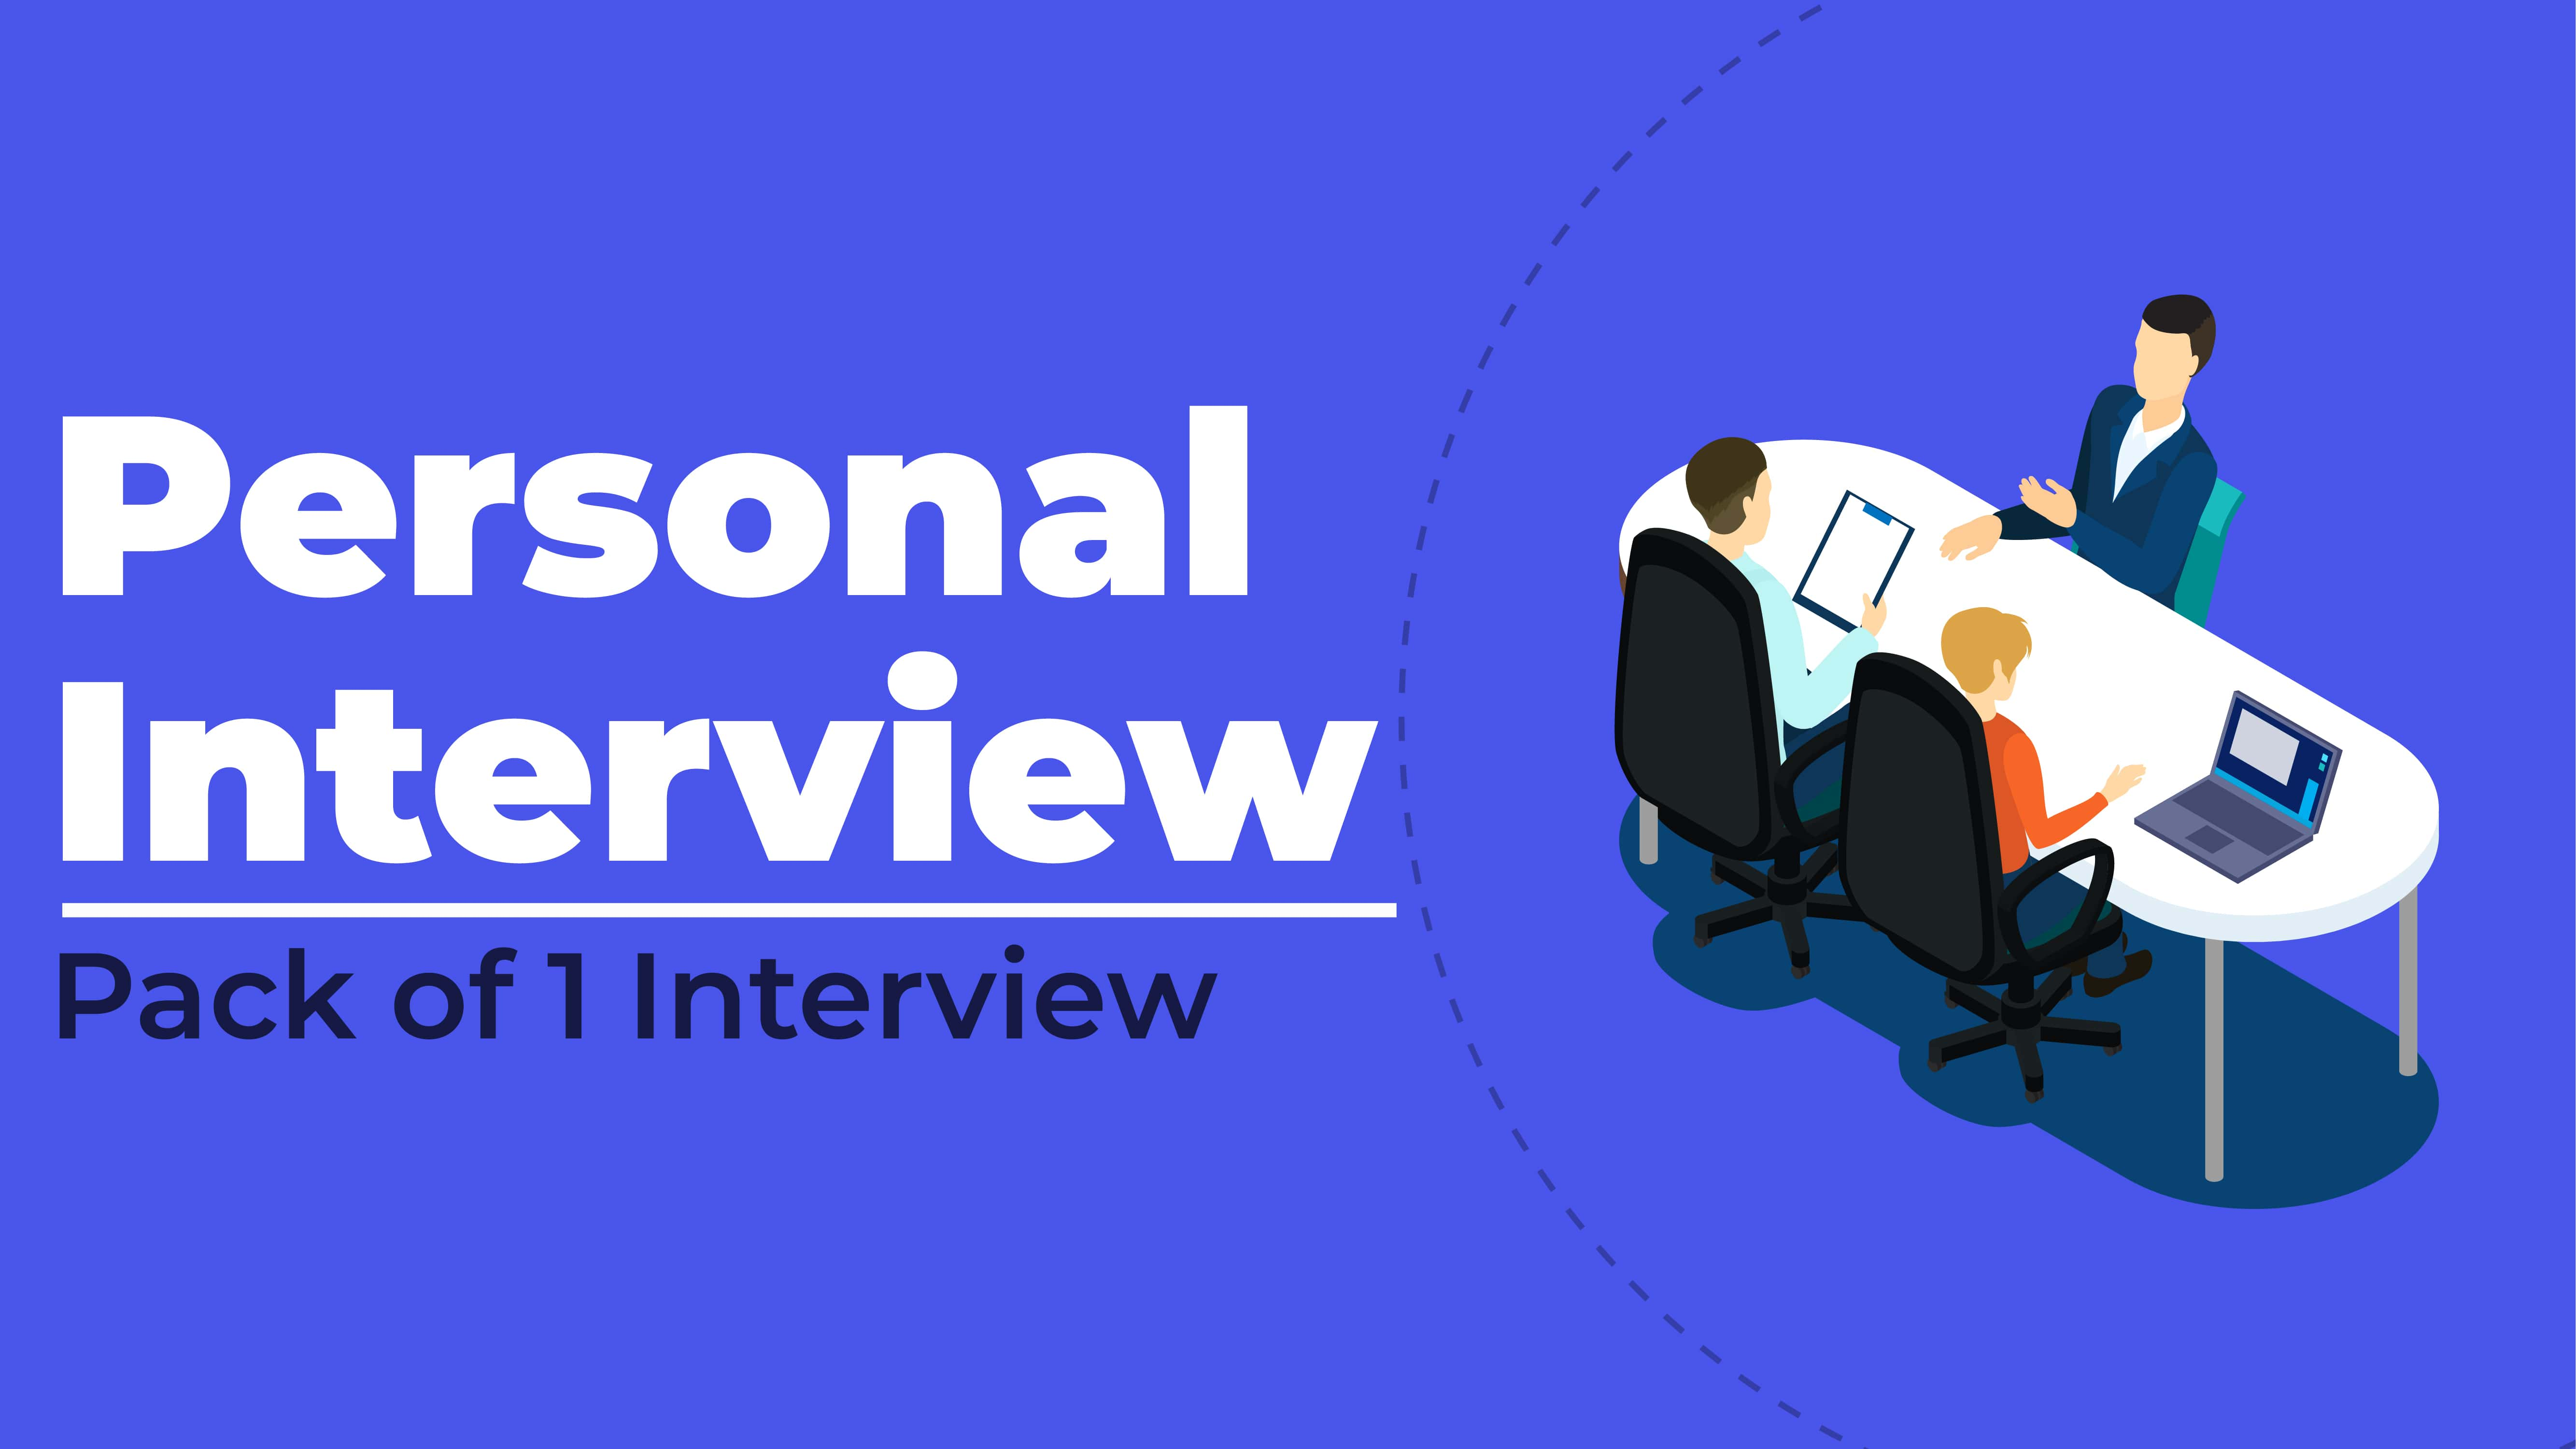 Personal Interview (Pack of 1 Interview)